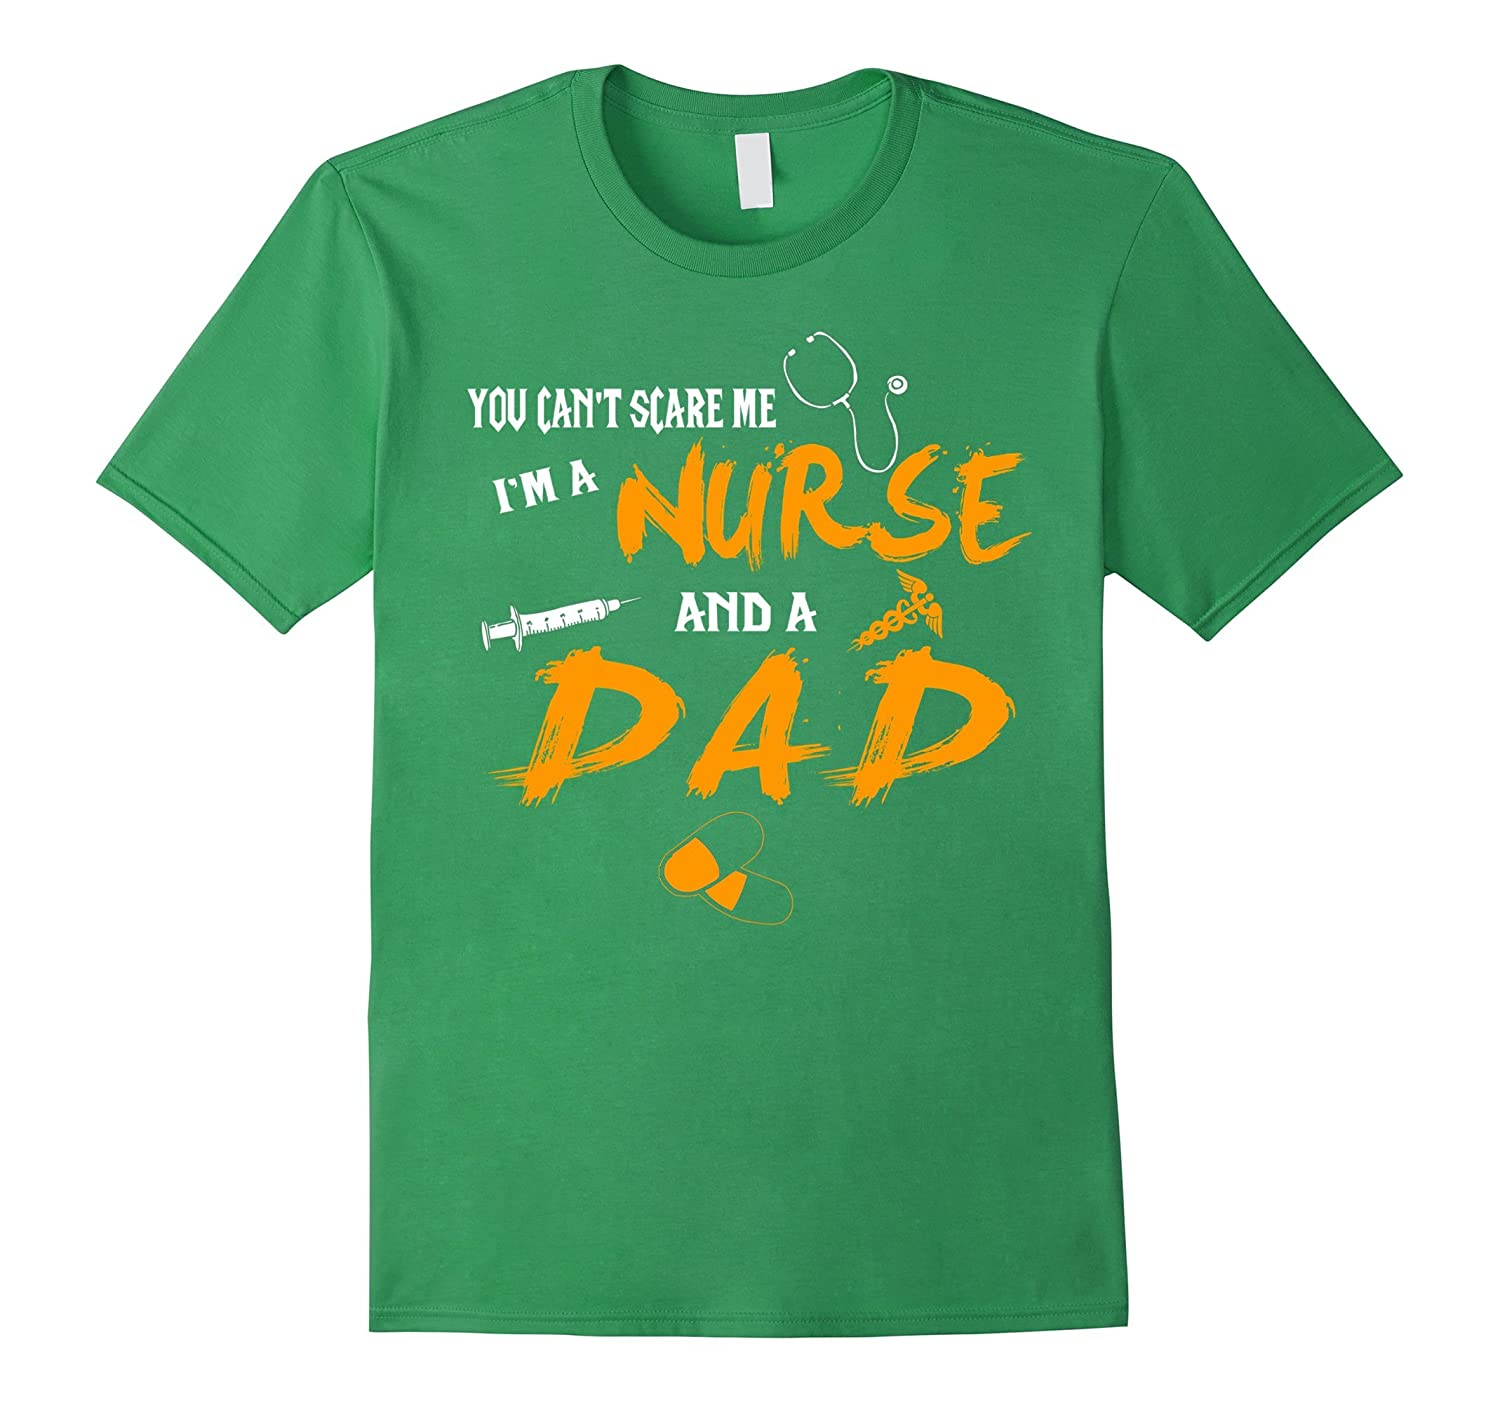 Can't Scare Me I'm A Nurse And A Dad